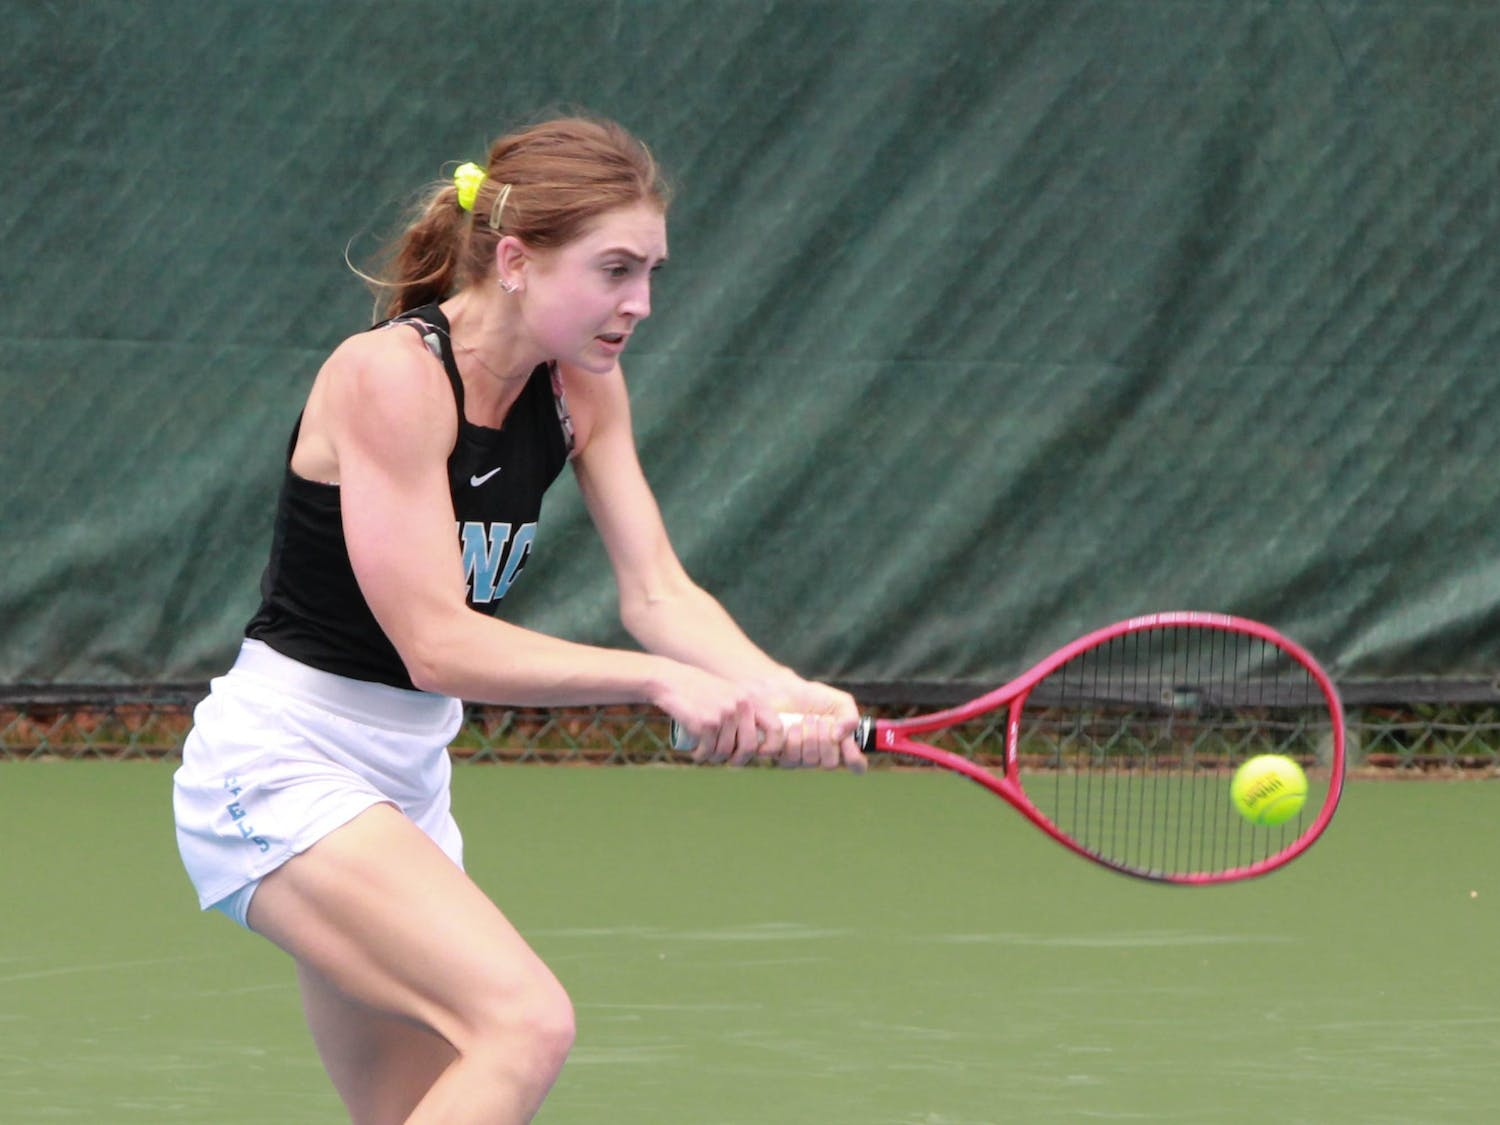 UNC first-year Fiona Crawley returns a volley during a singles' match on March 28, 2021 at Cone-Kenfield Tennis Center. The Tar Heels defeated the Fighting Irish 7-0.